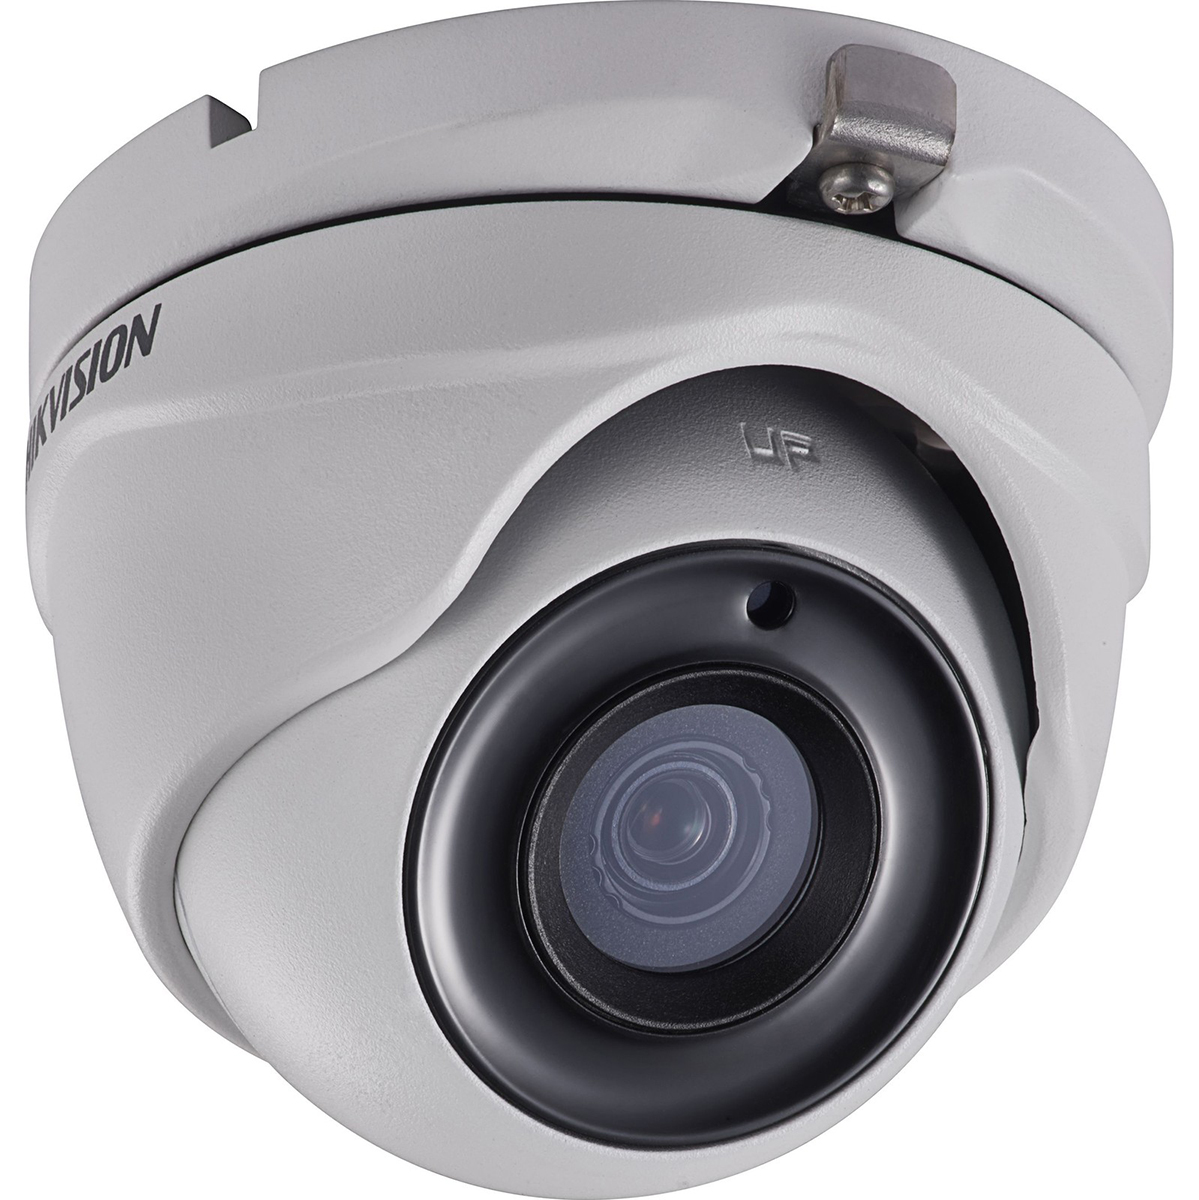 Hikvision DS-2CE56H0T-ITME 5MP External Eyeball